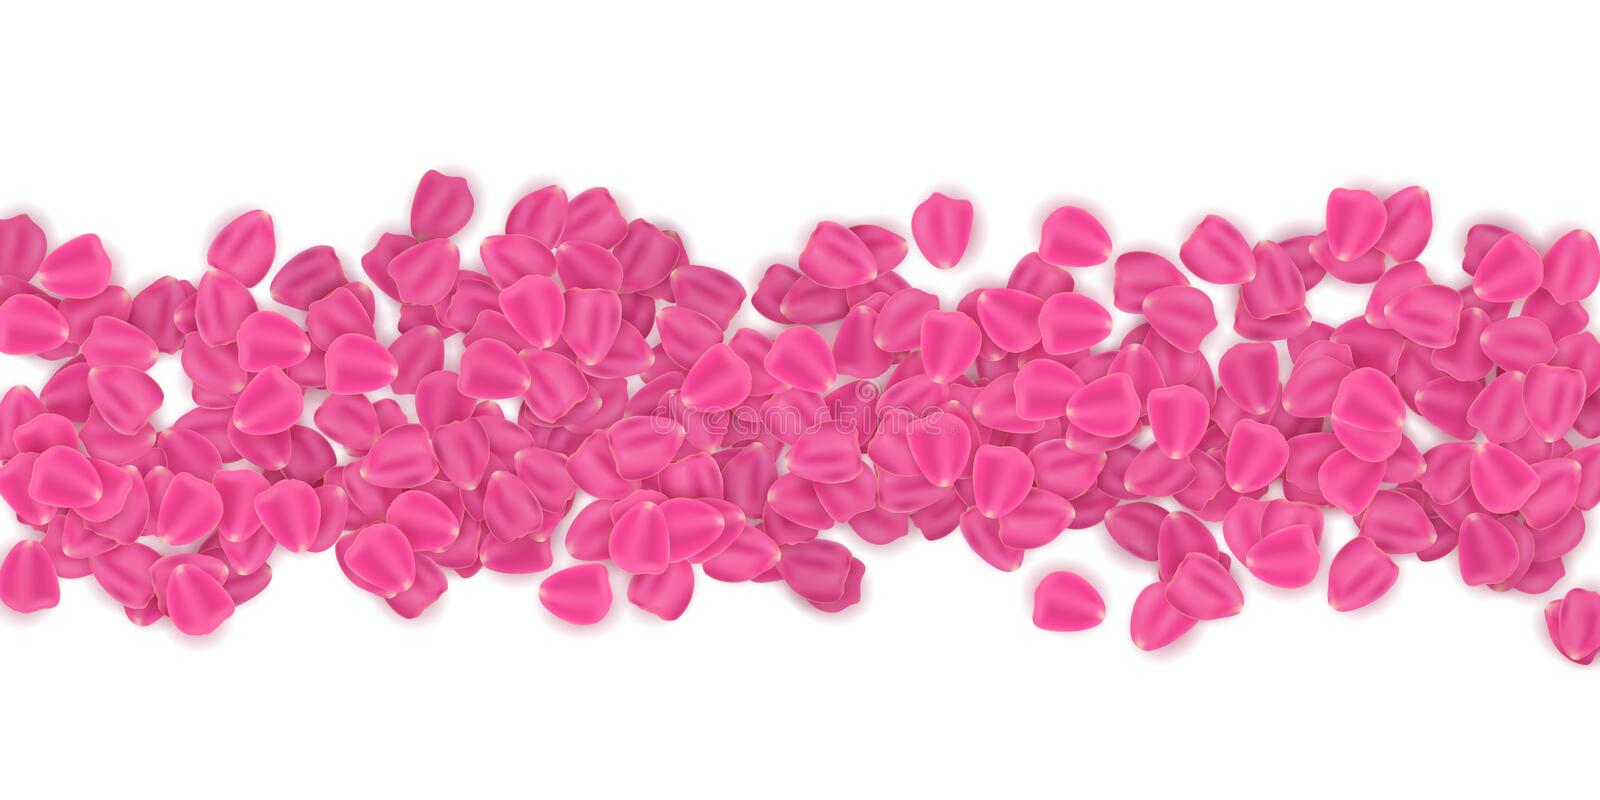 Pink petals isolated on white background. March 8. Valentine`s Day. Romantic frame template for your design. Vector illustration. EPS 10 royalty free illustration